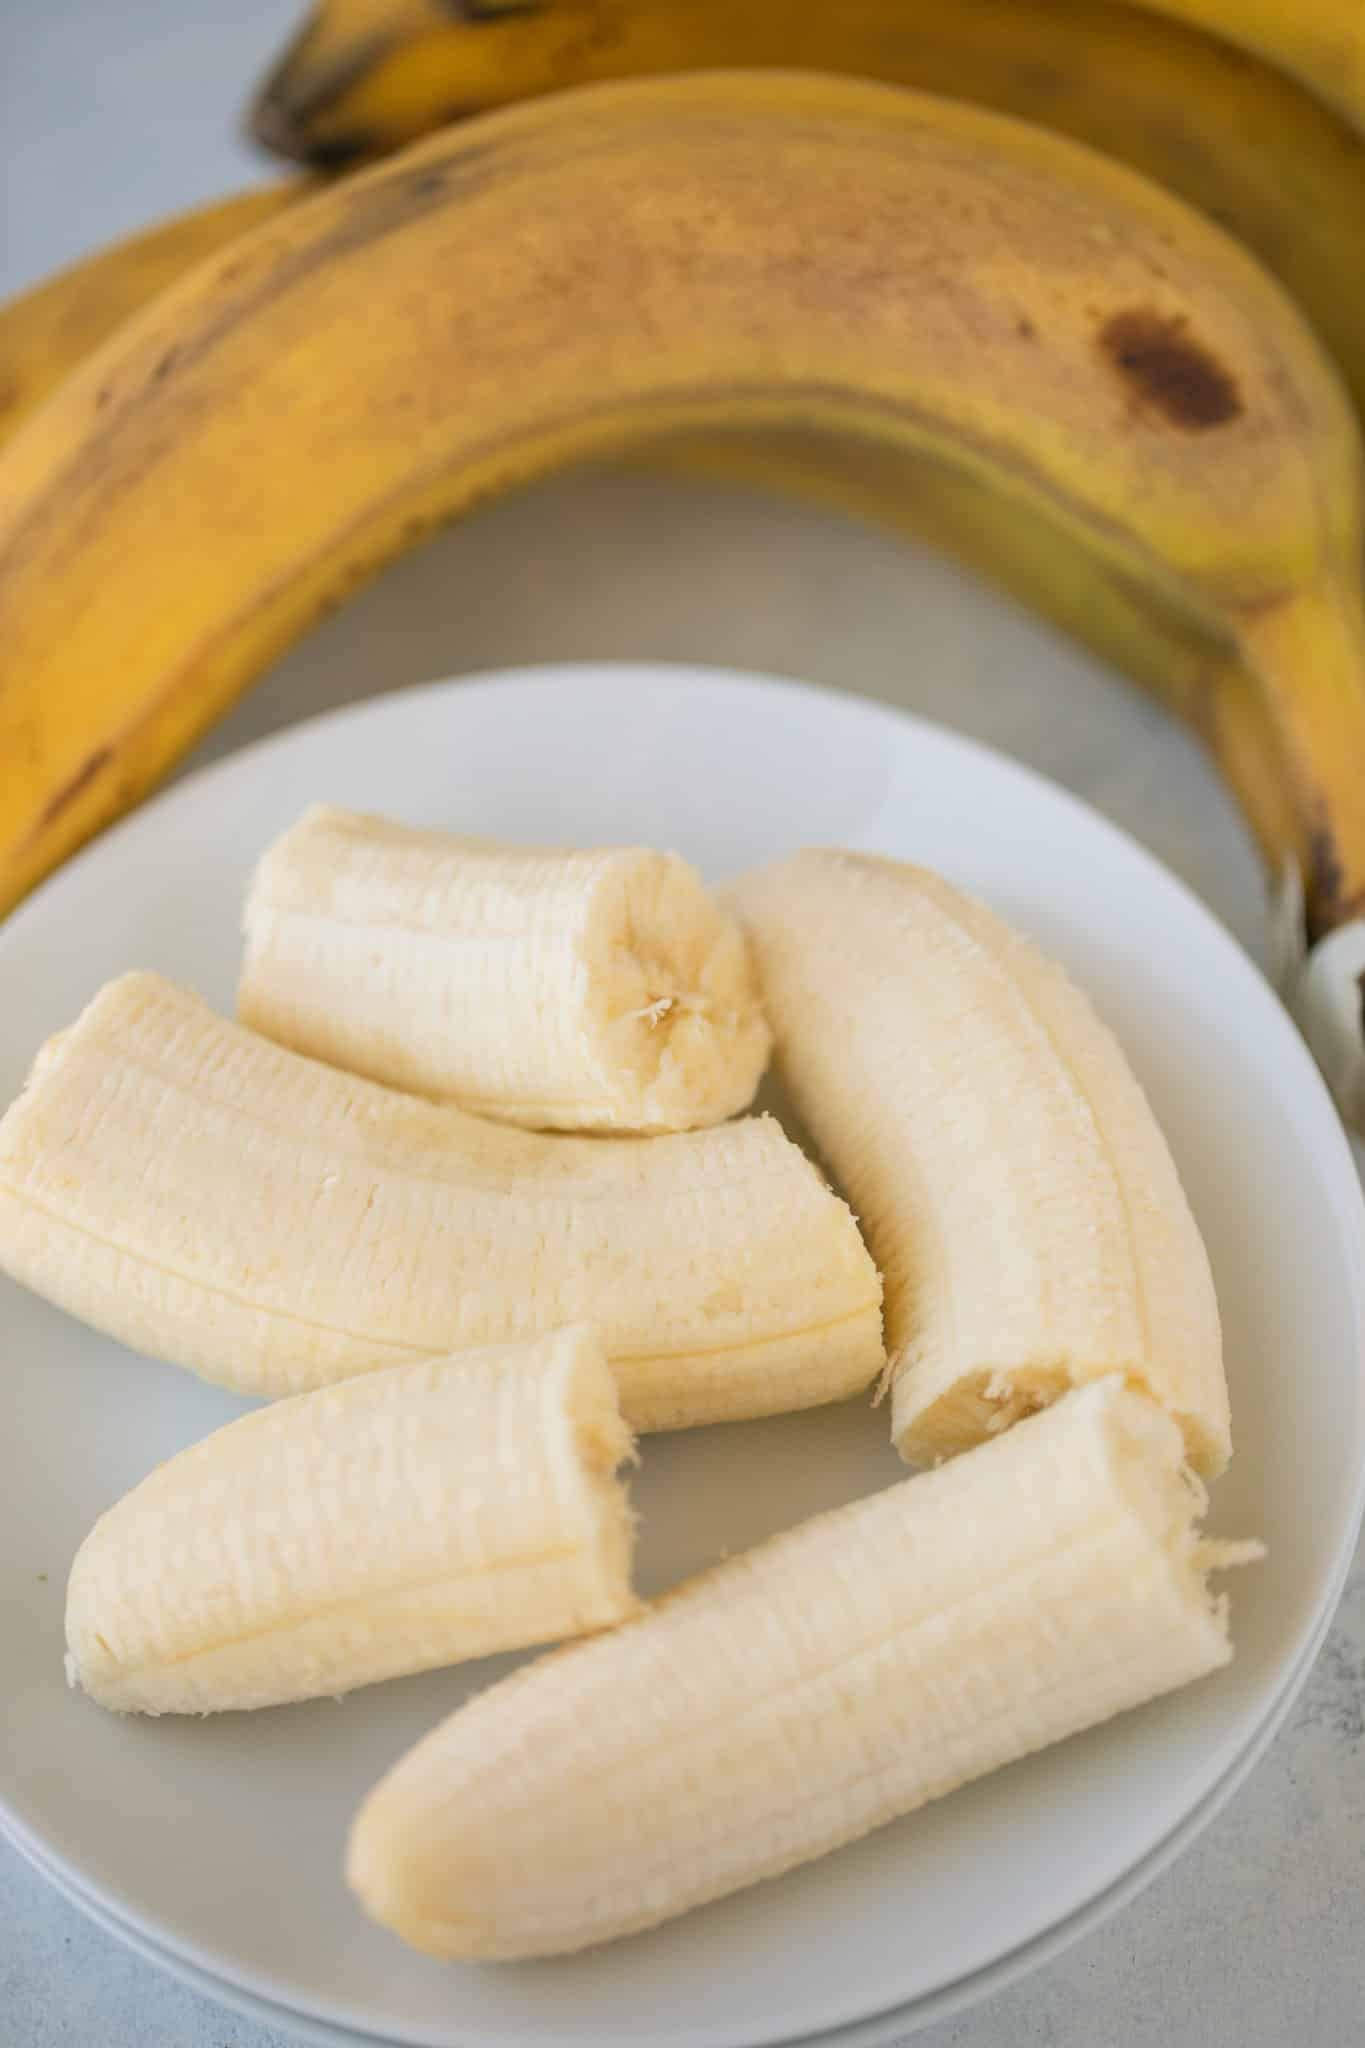 ripe bananas on a stack of white plates